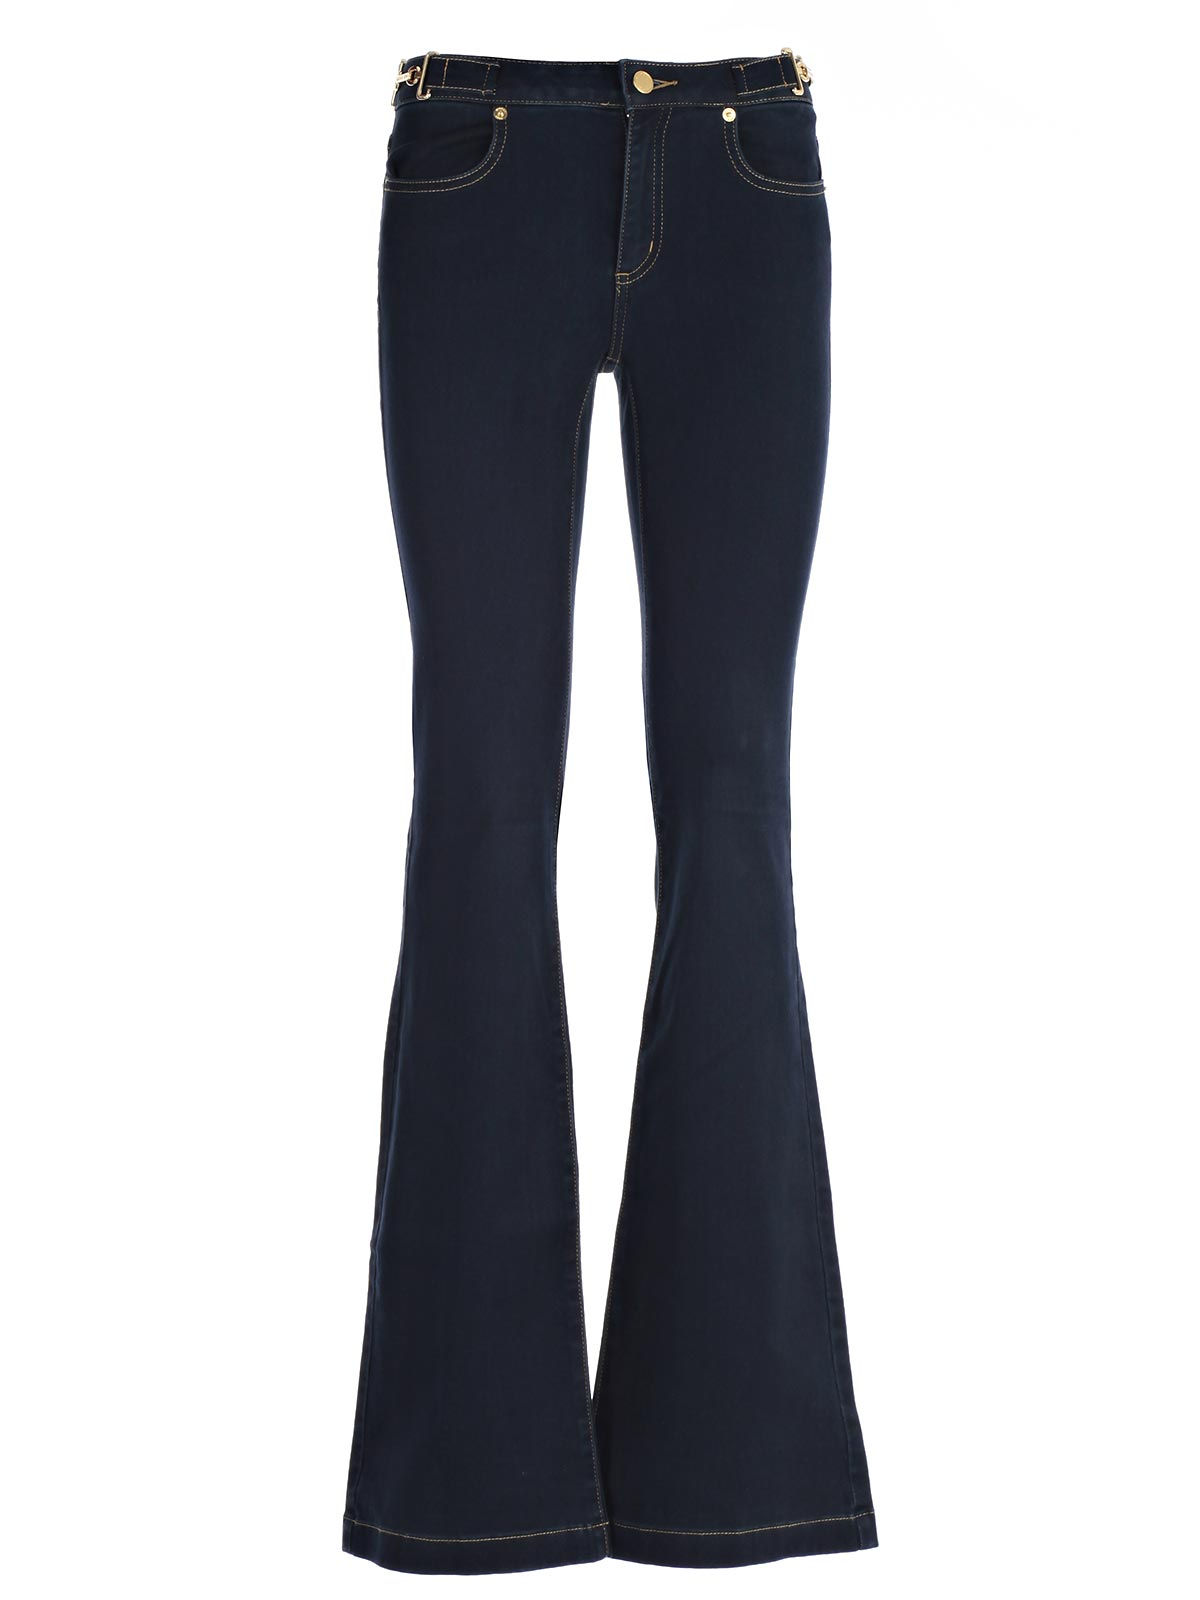 Picture of MICHAEL MICHAEL KORS JEANS JEANS BOOTCUT